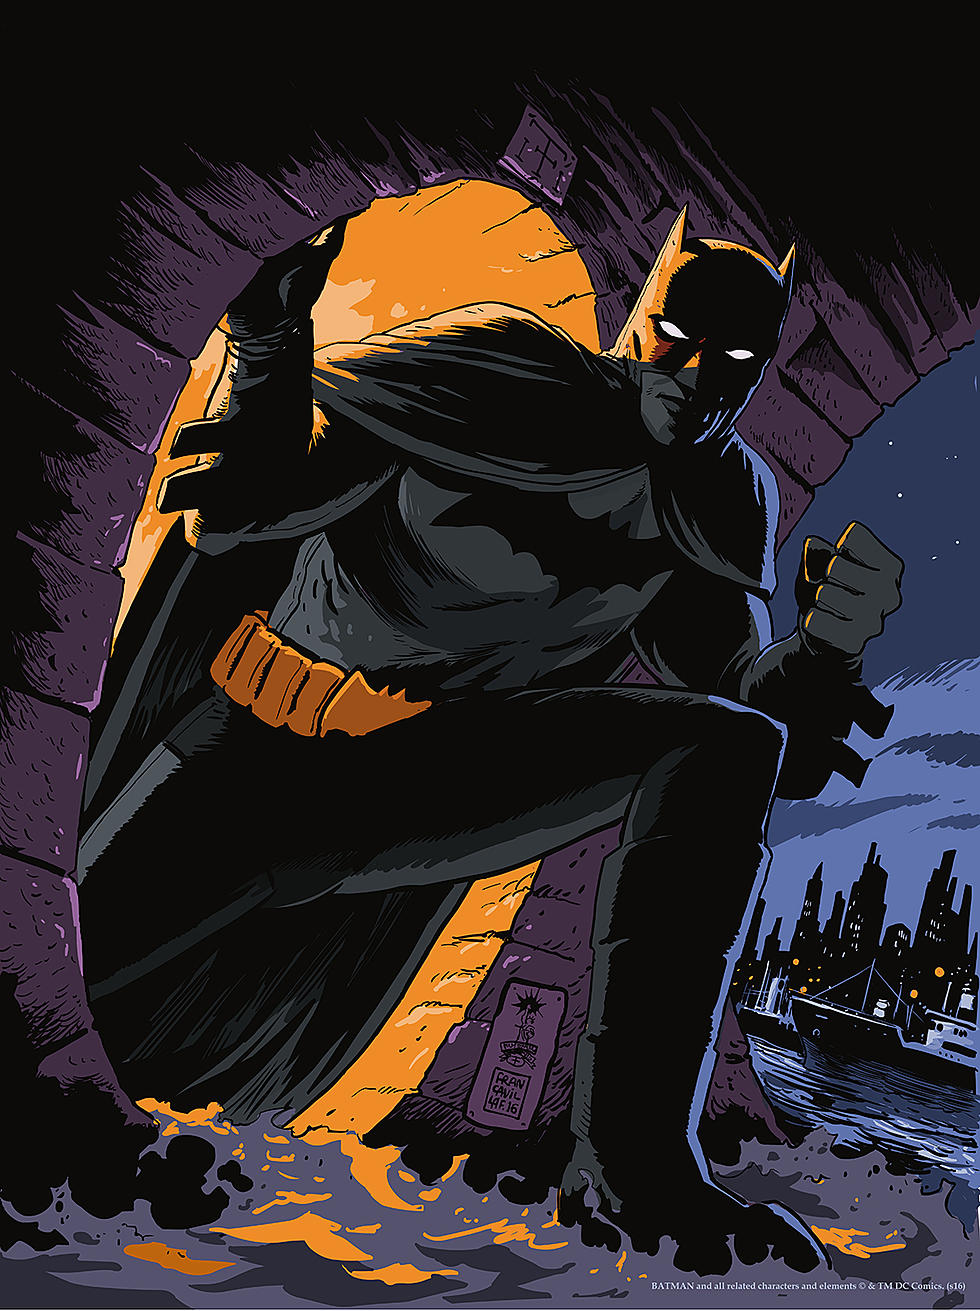 Francesco Francavilla Looks Back On 10 Years In Comics